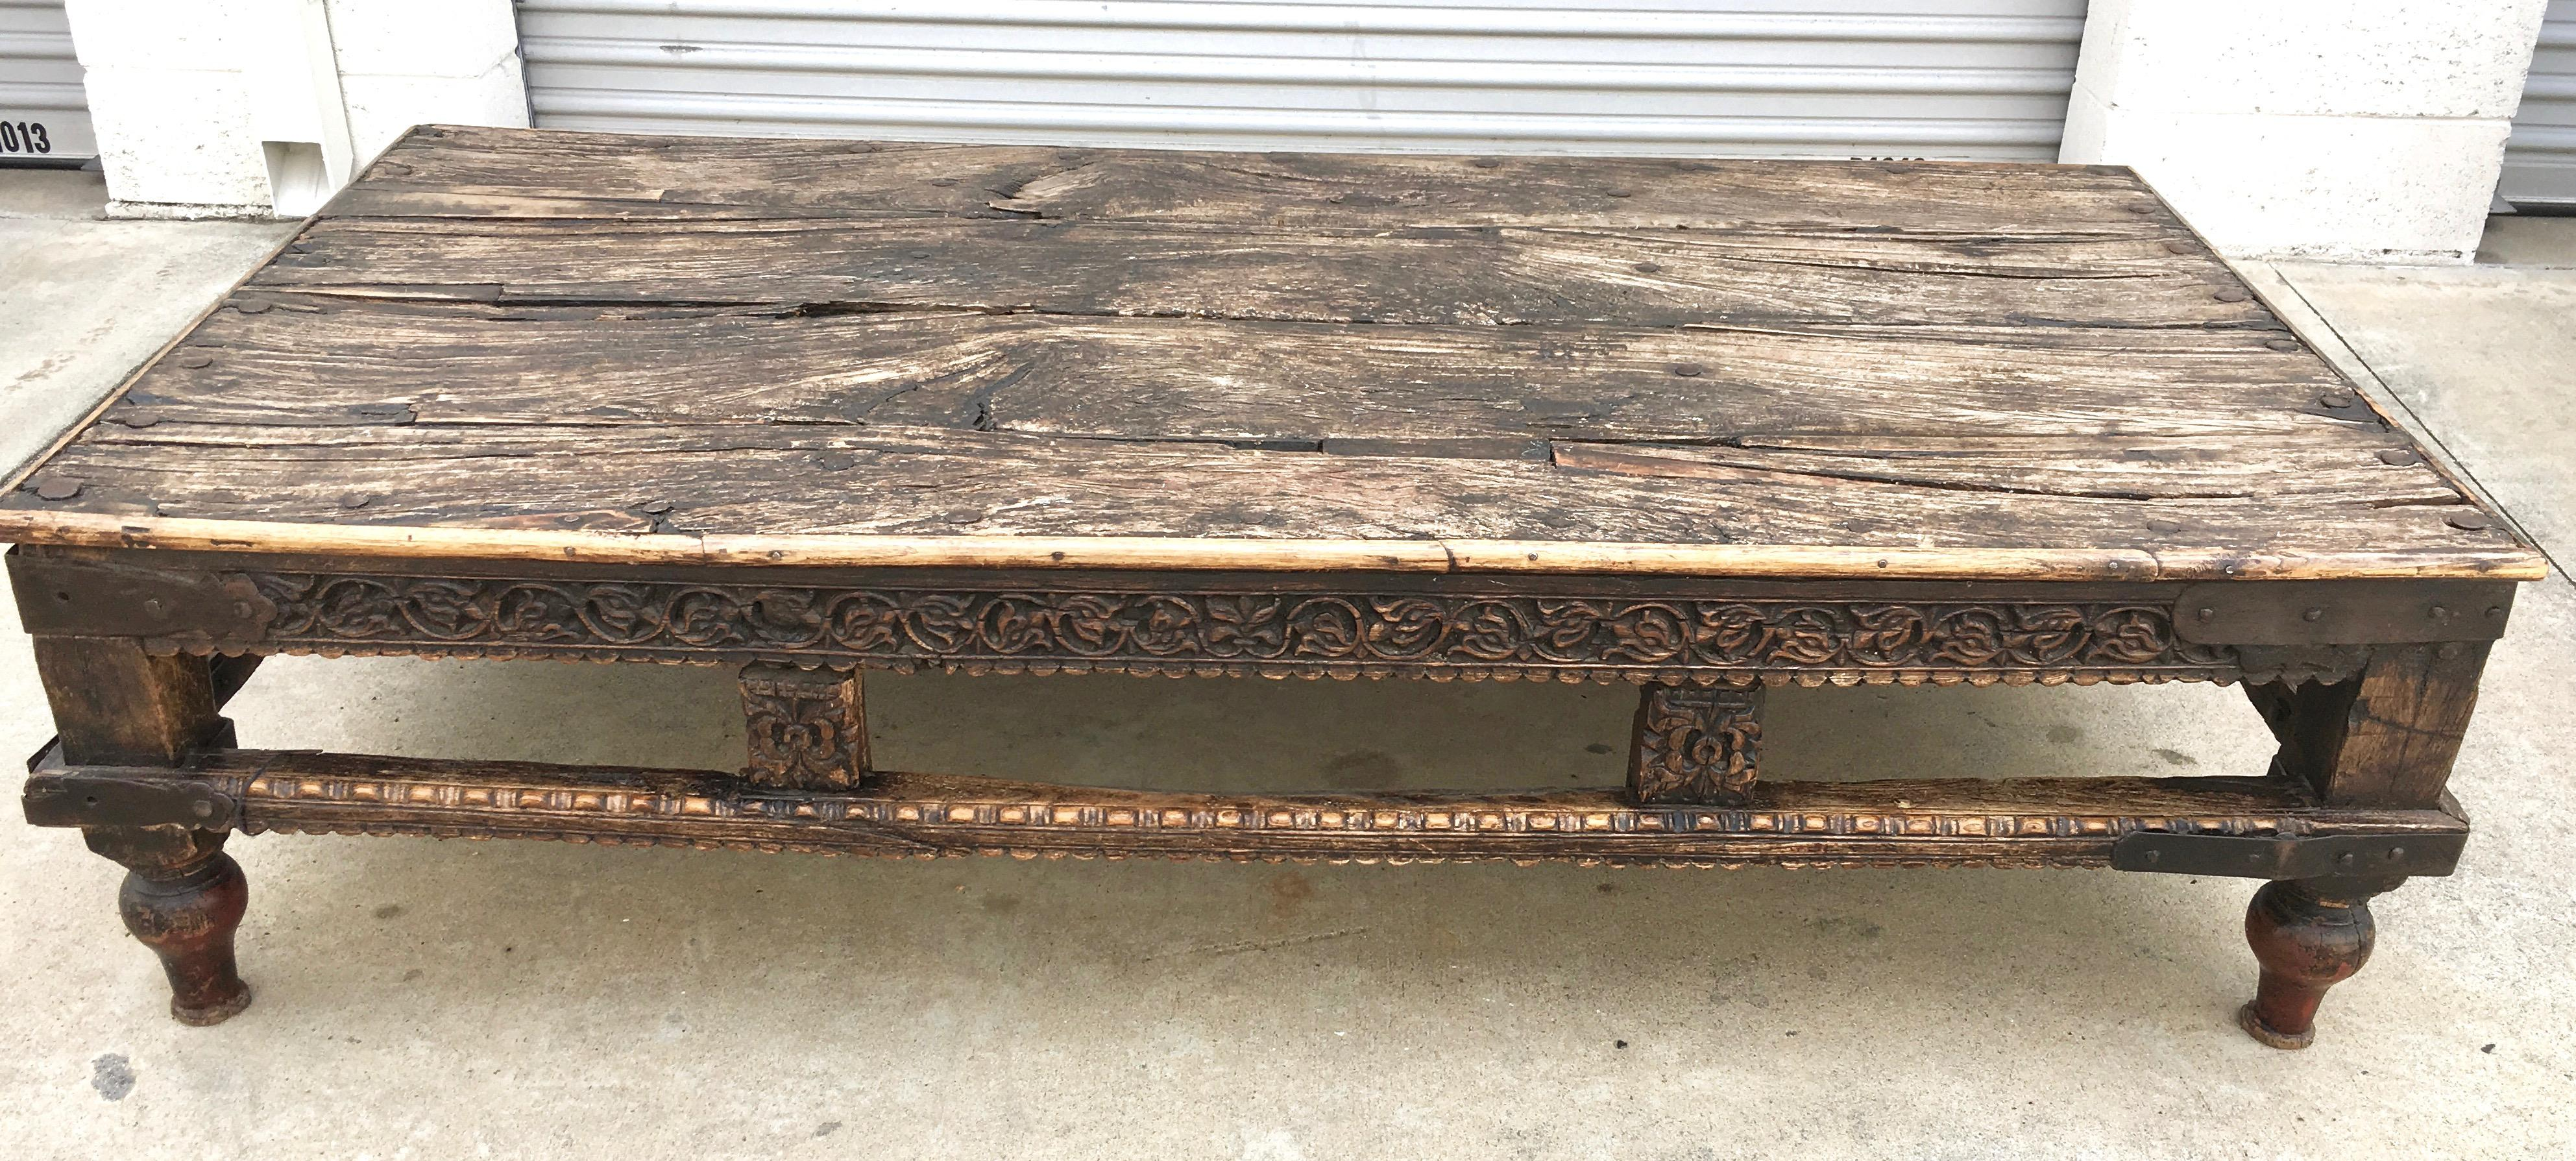 Captivating 19th Century Burmese Wood Opium Bed Coffee Table   Image 3 Of 10